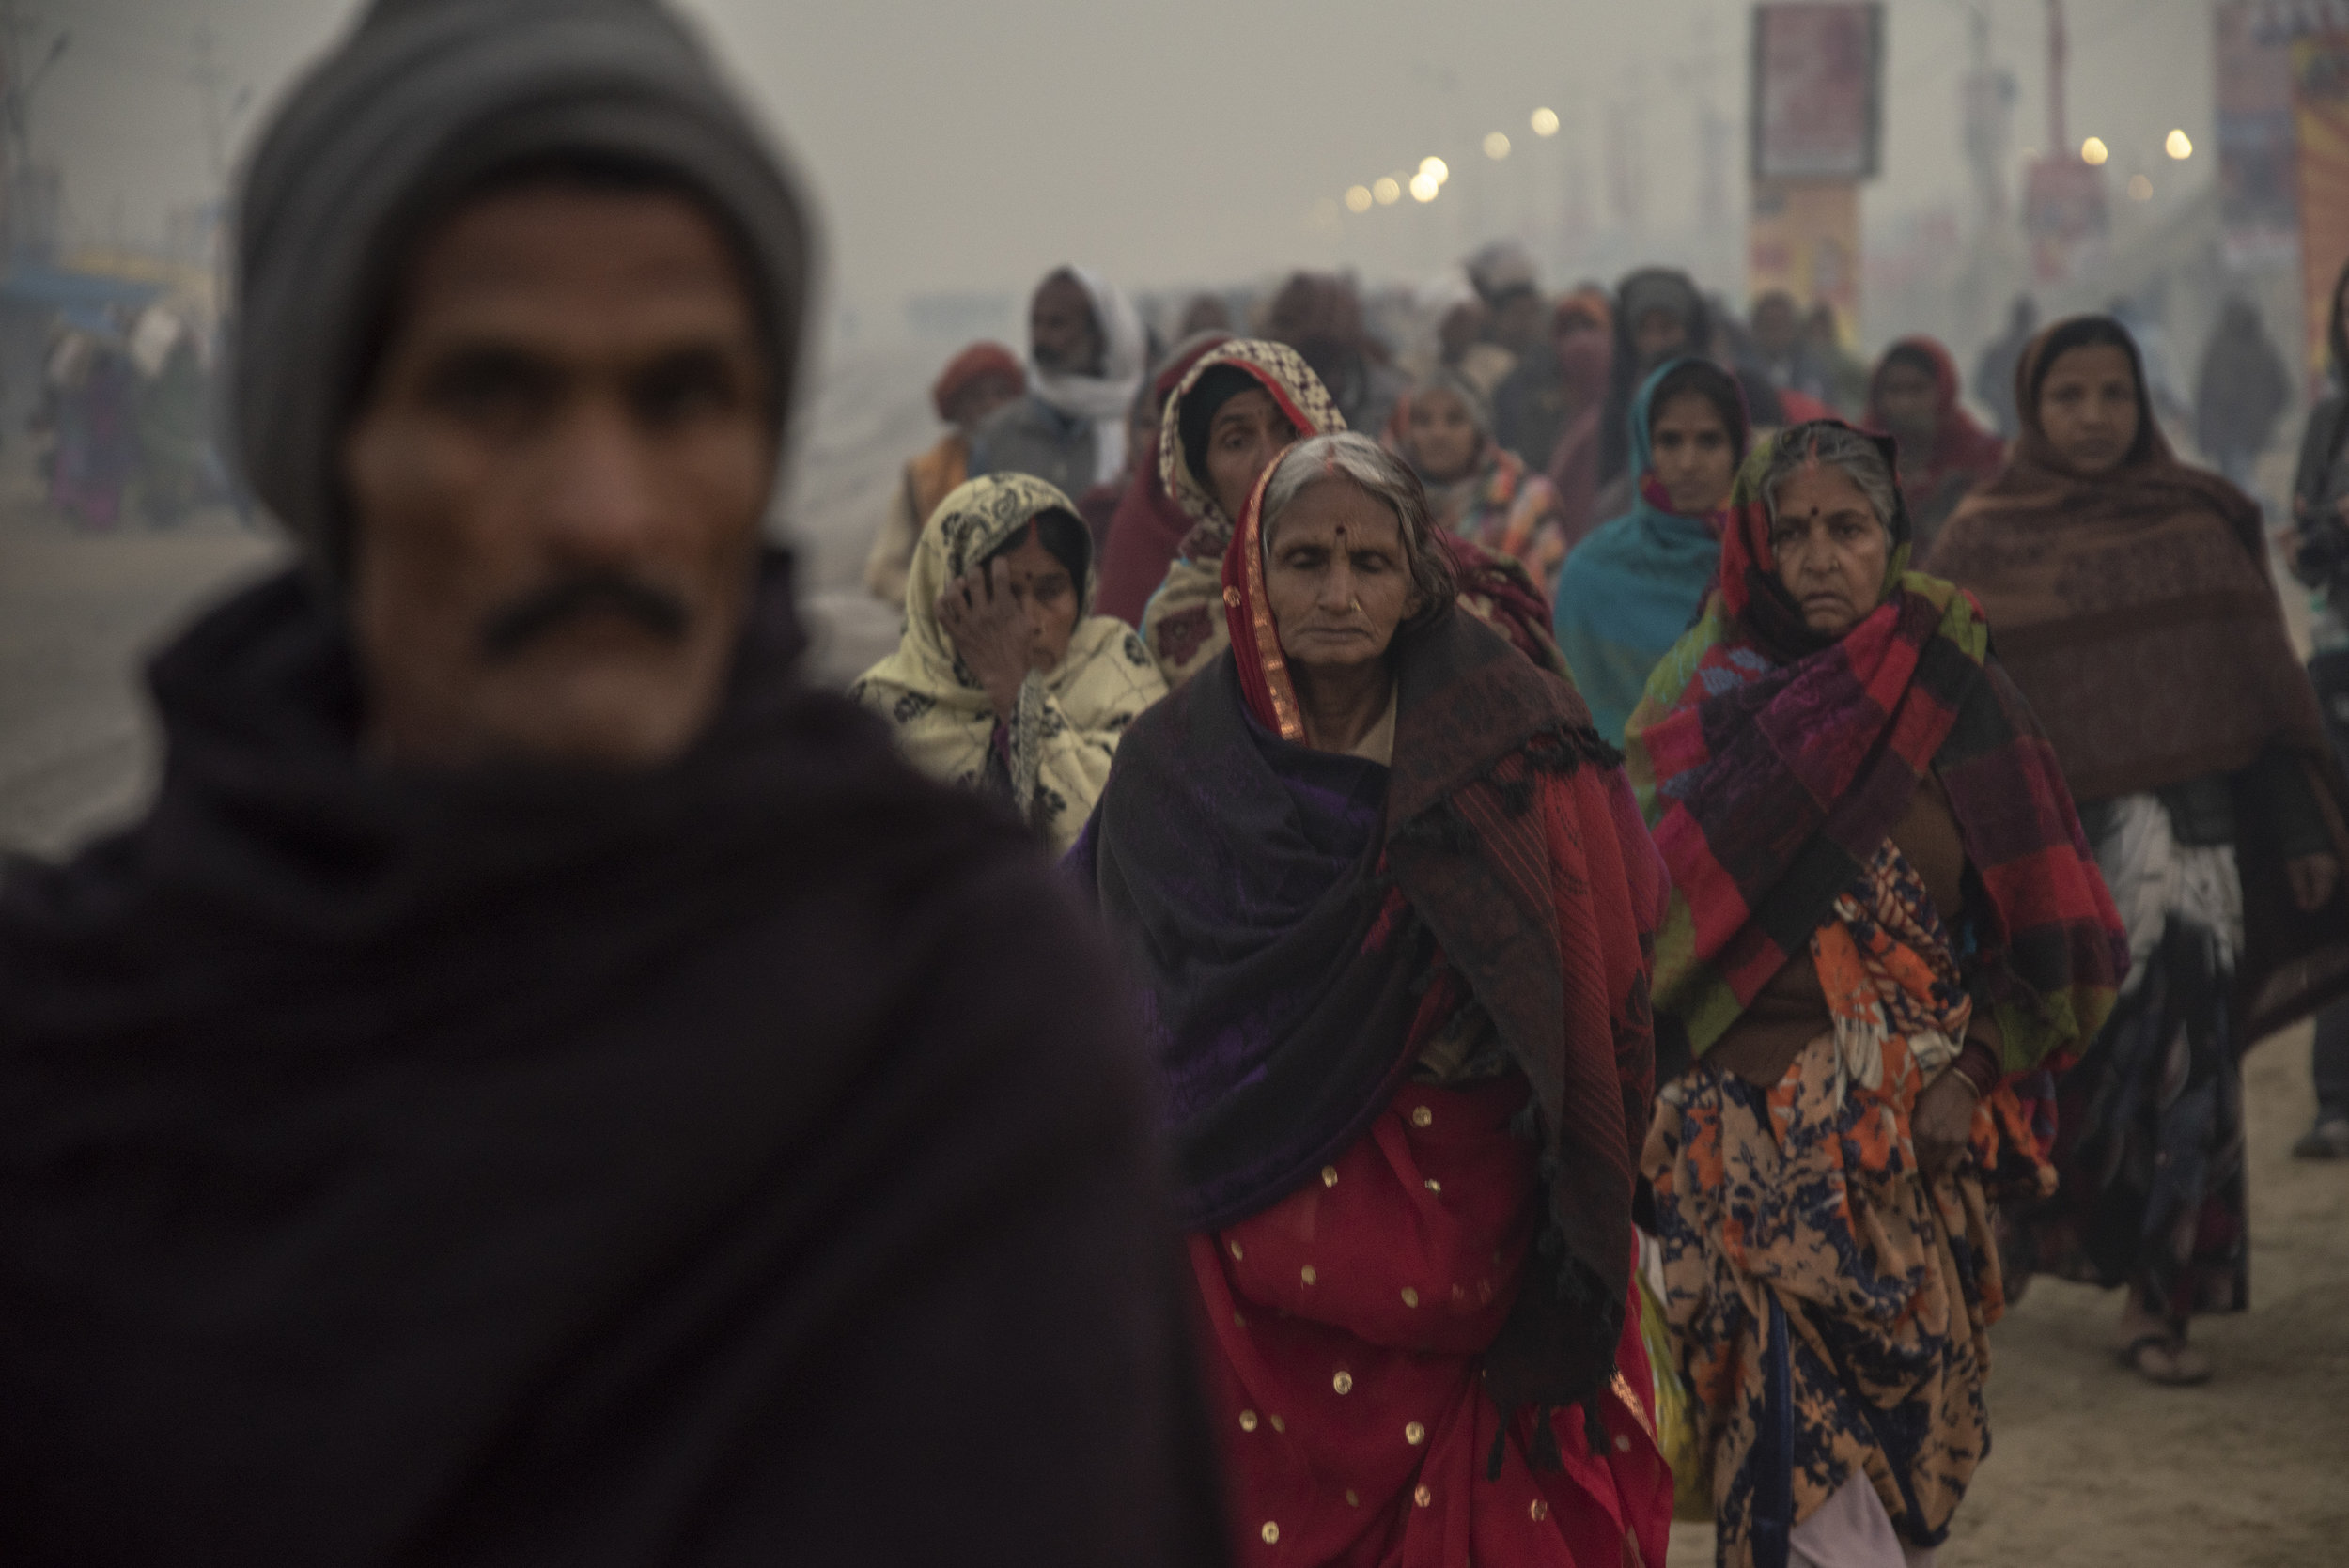 Group of women led through the Mela.